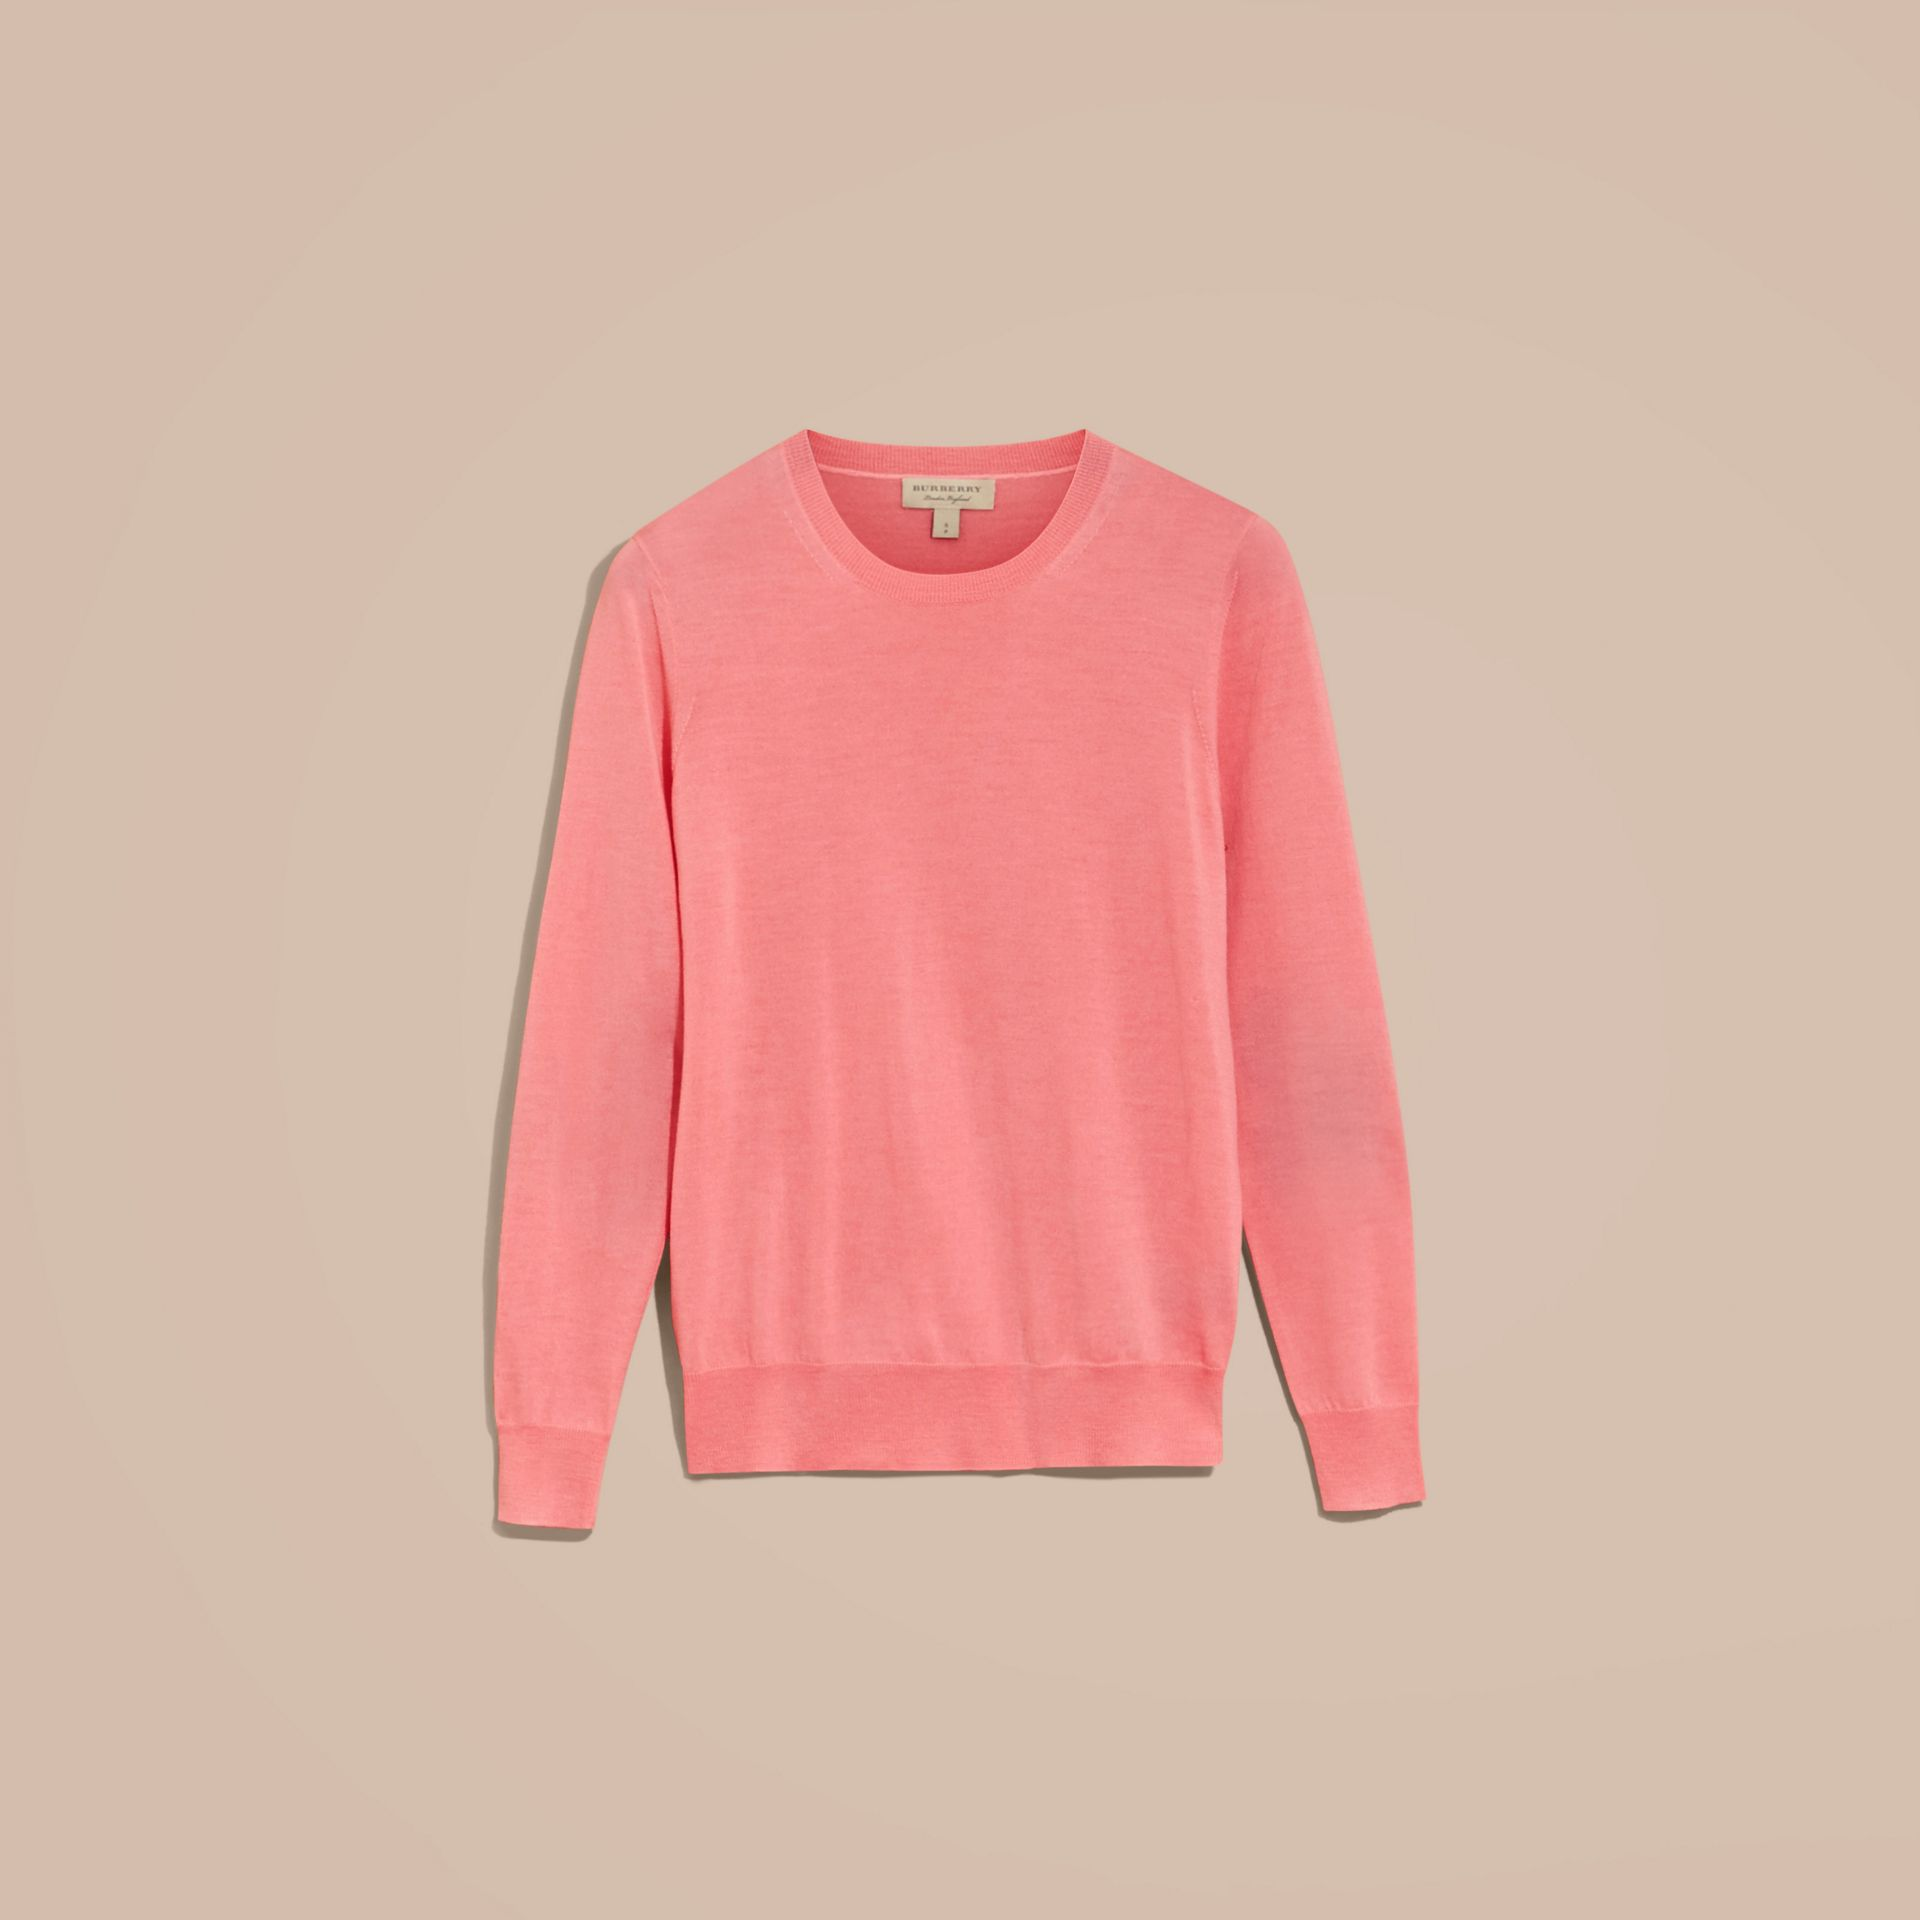 Pale rose pink Check Detail Merino Wool Crew Neck Sweater Pale Rose Pink - gallery image 4